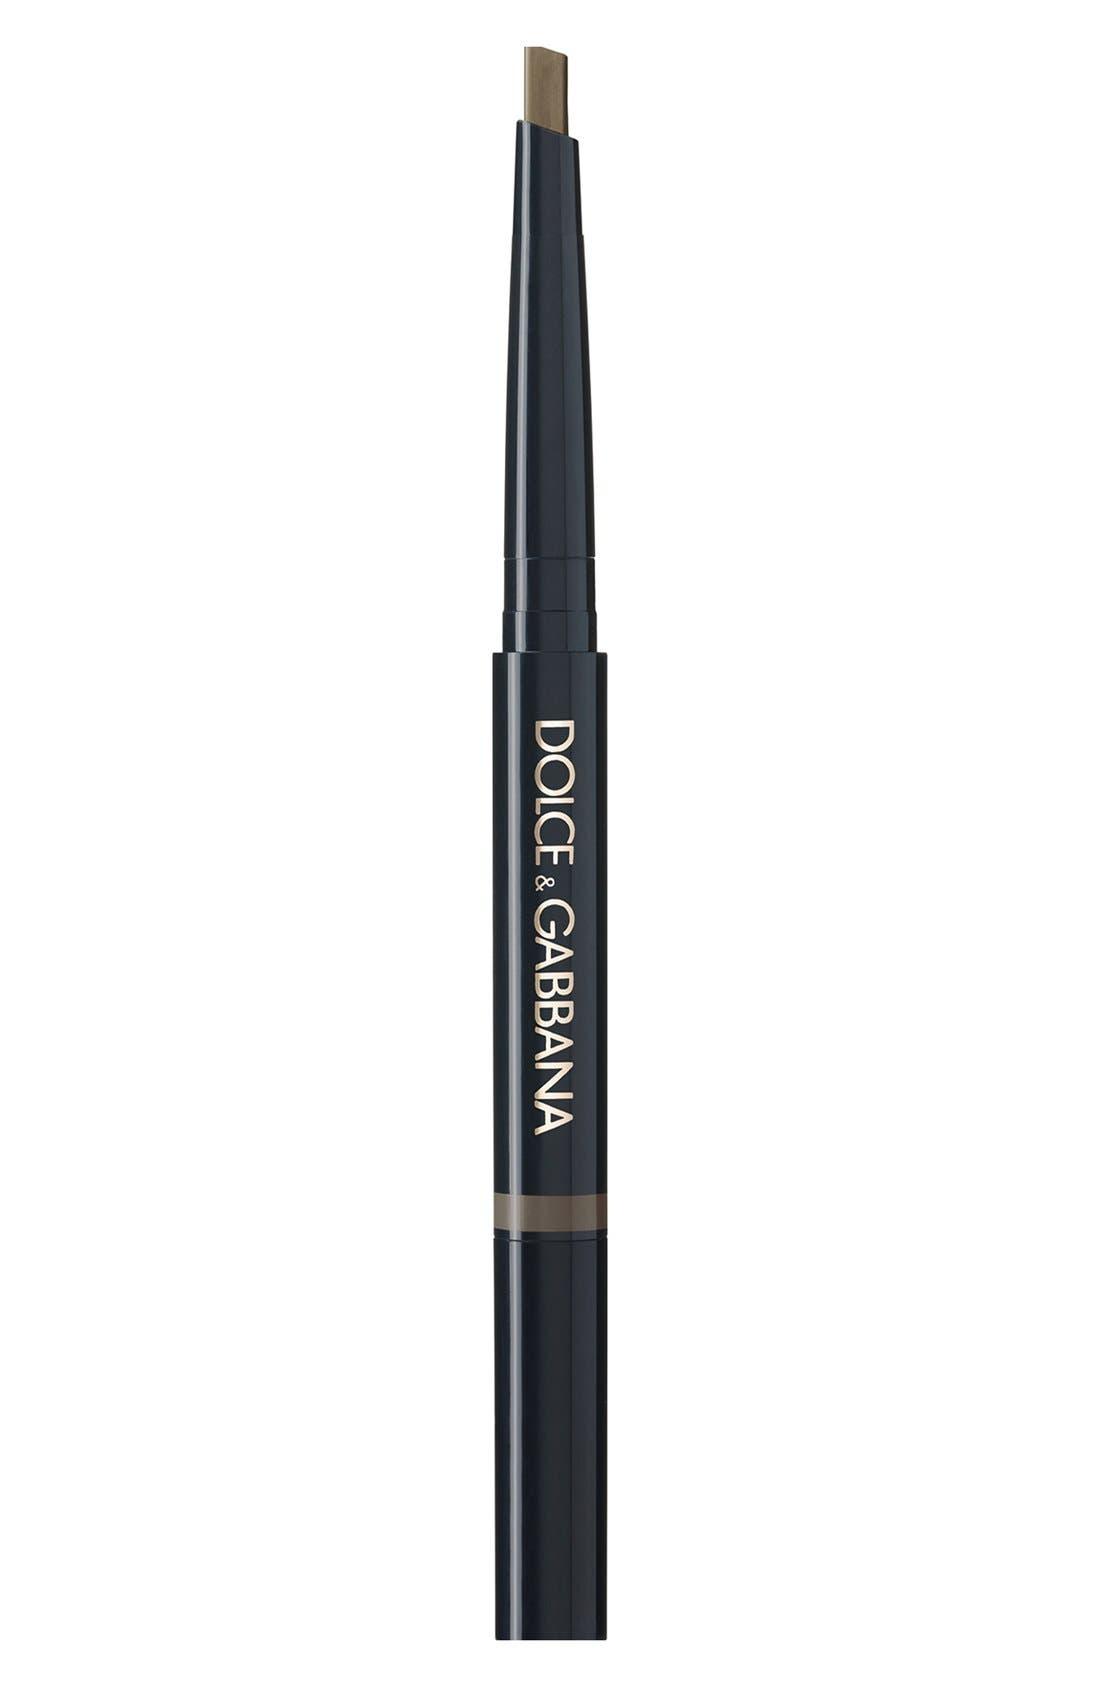 Dolce&Gabbana Beauty Shaping Eyebrow Pencil